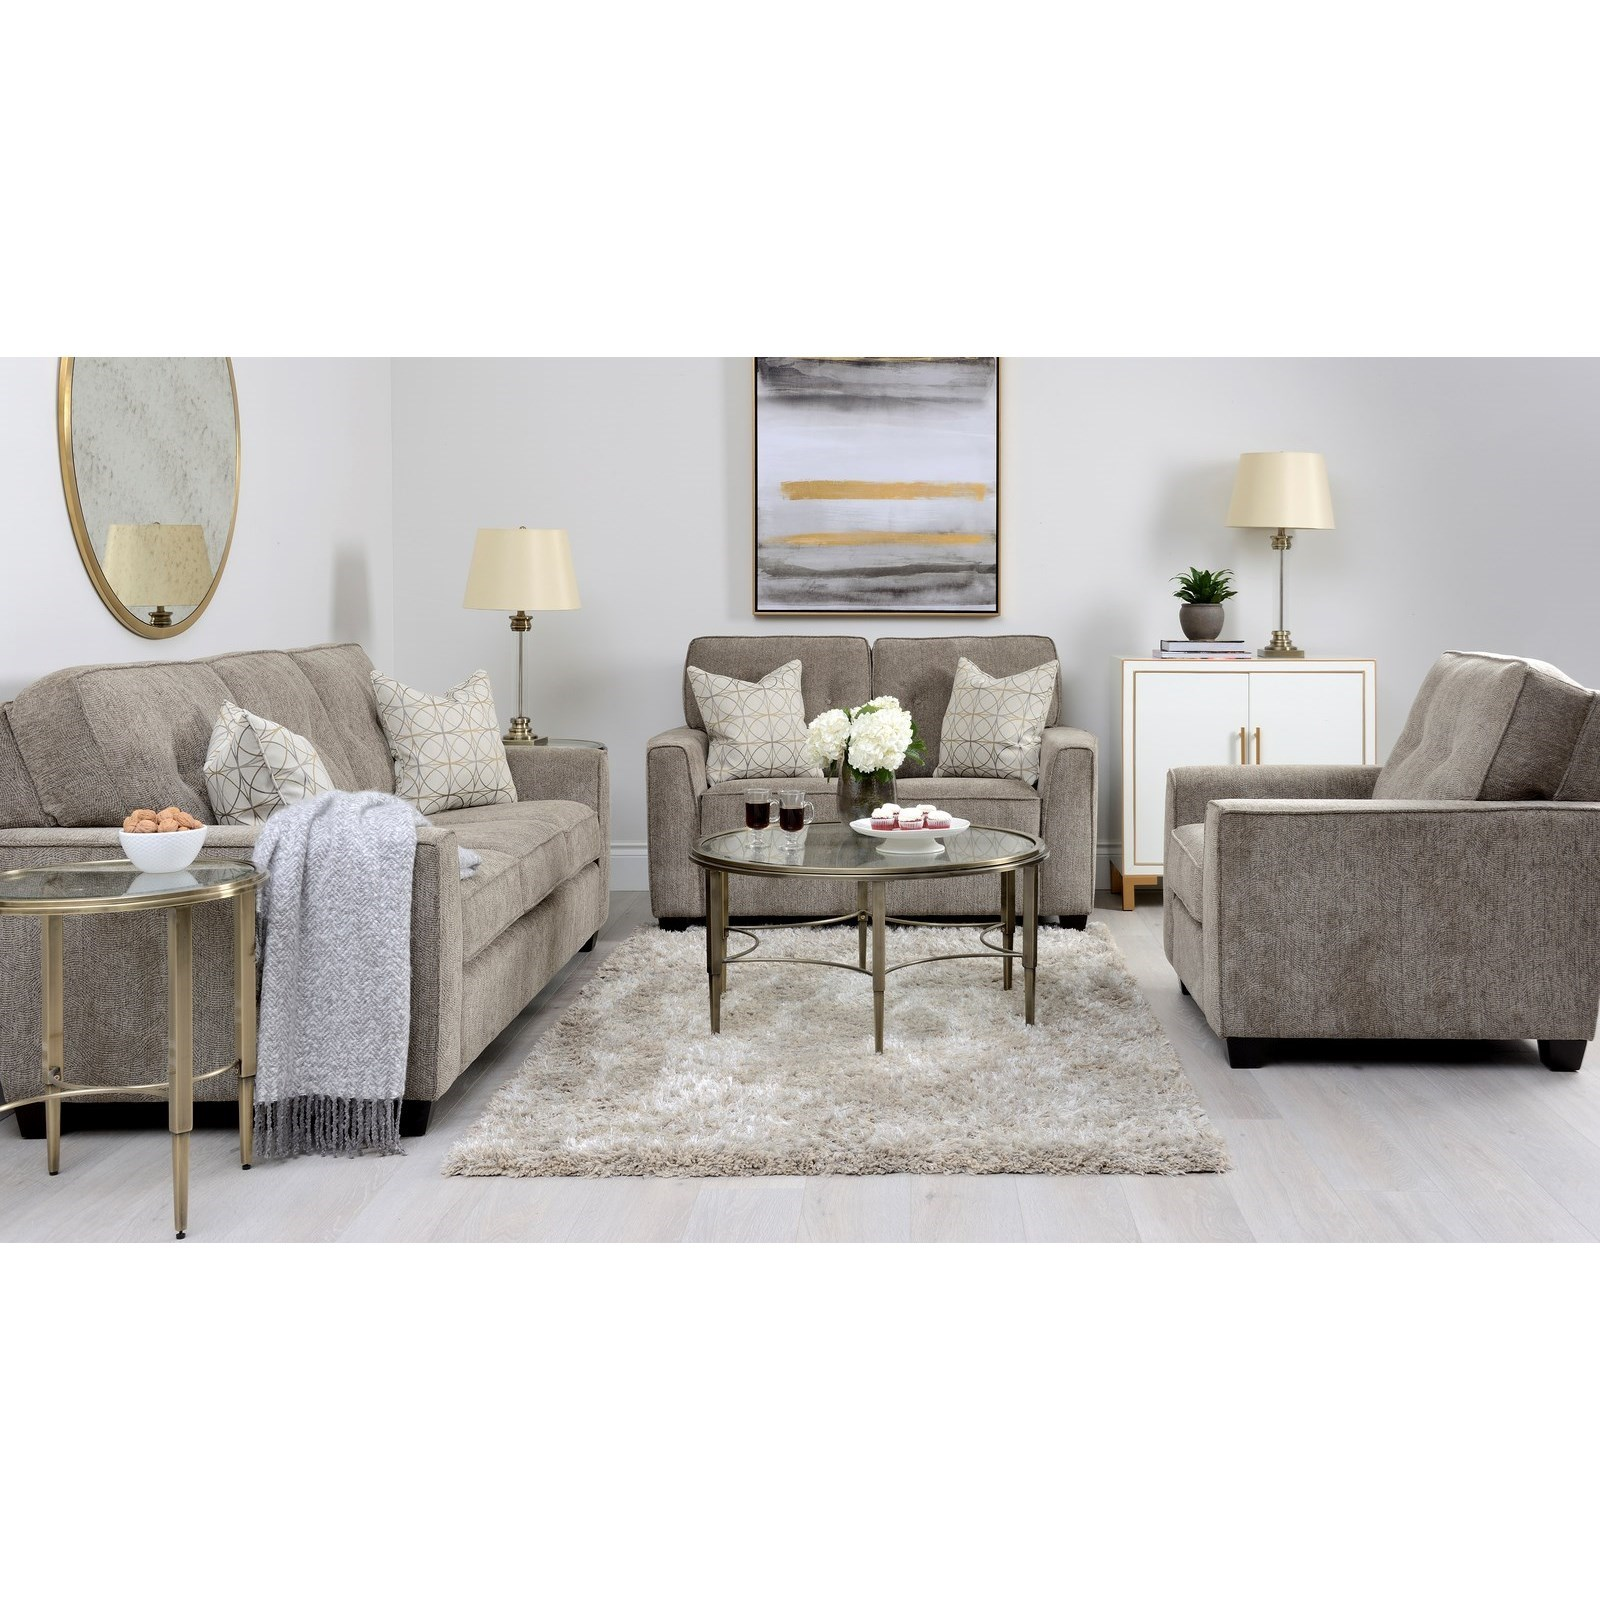 2967 Living Room Group by Taelor Designs at Bennett's Furniture and Mattresses